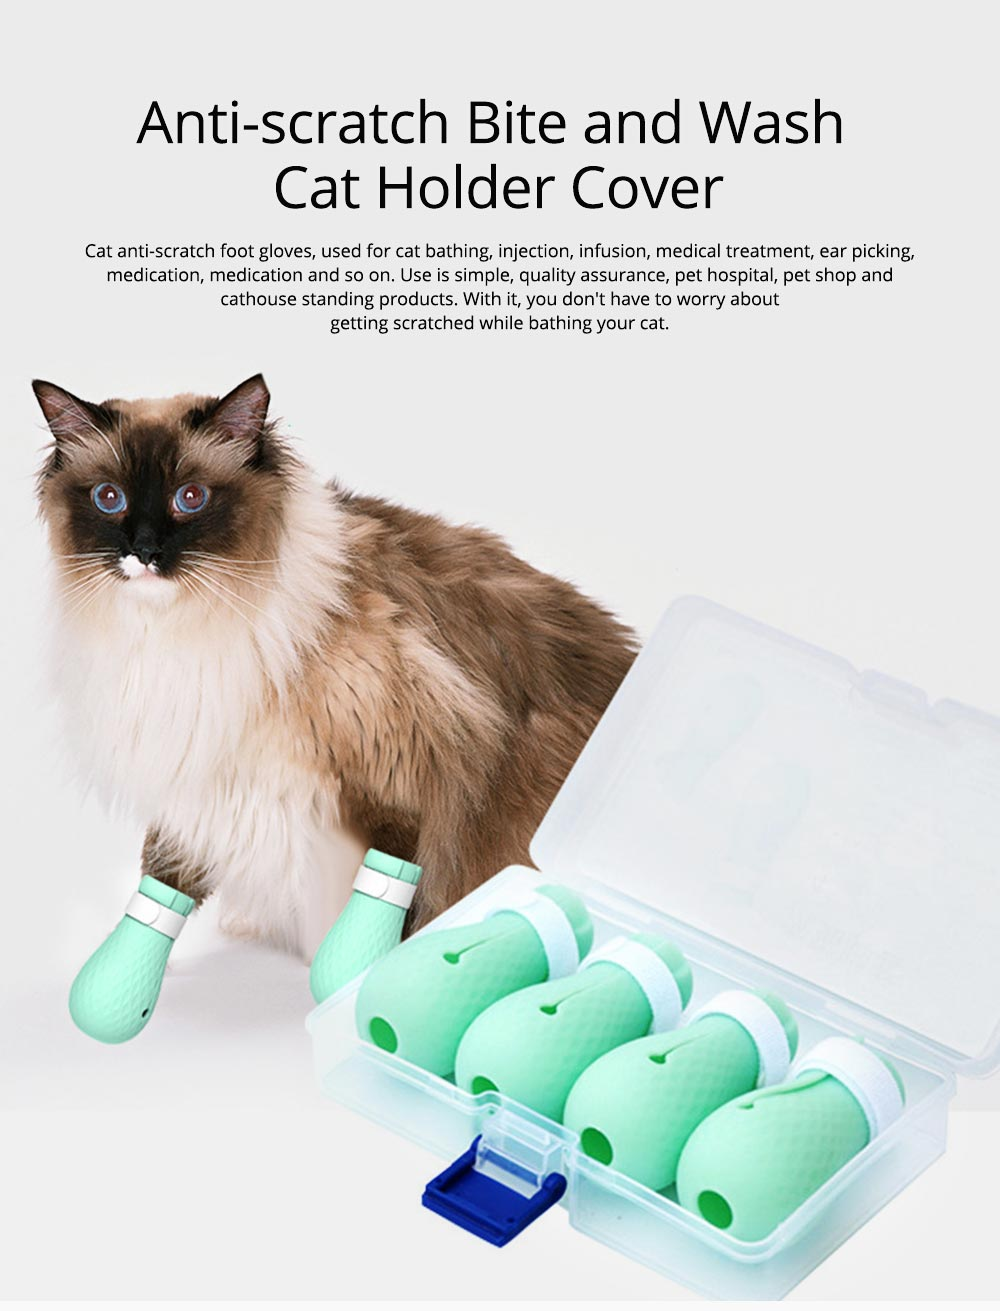 Anti-scratch Bite and Wash Cat Bags Feet Holder Cover for Cutting Nails or Bathing Cat Feet Holding Artifacts Pet Products 0